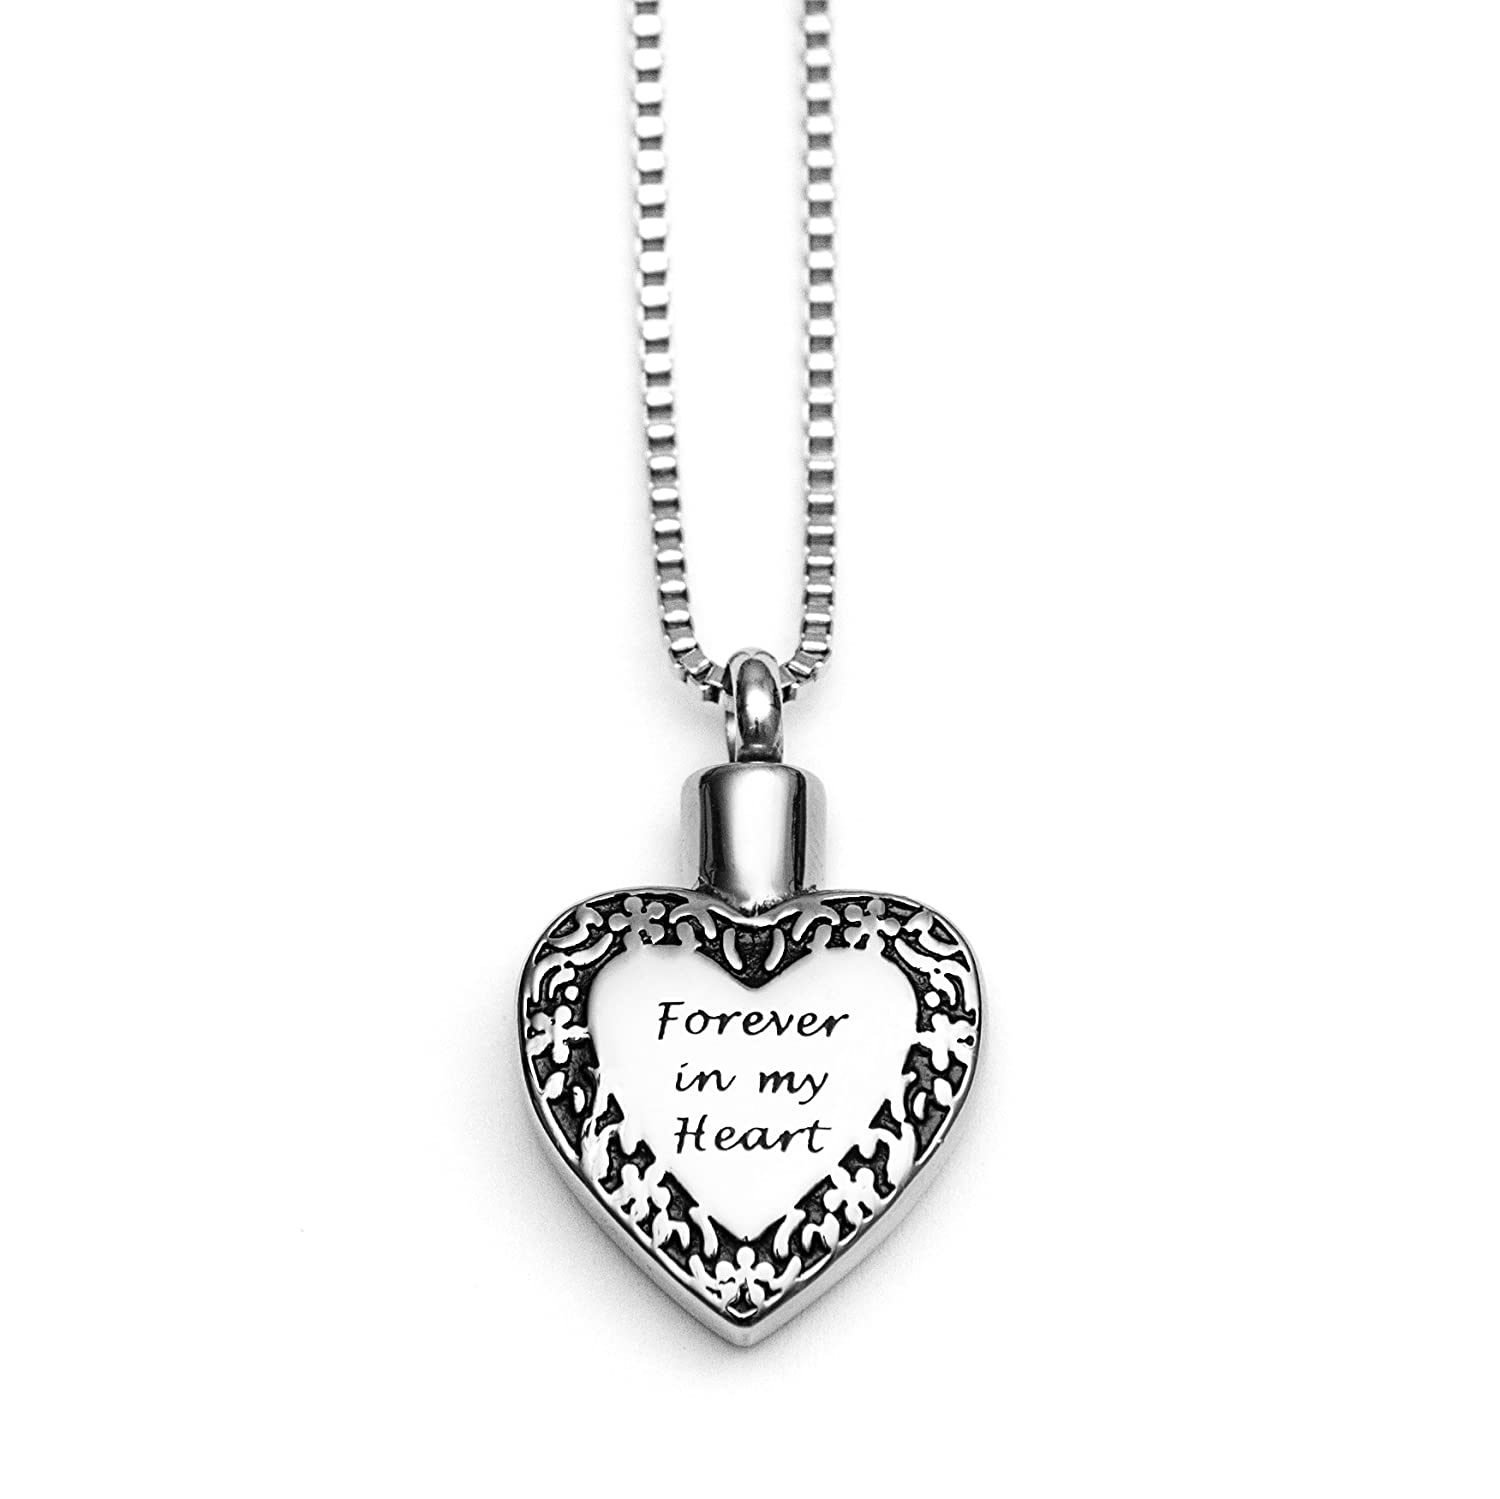 epoxy black v cremation a net urn flowers sonao keepsake jewelry heart memorial necklace pendant ash